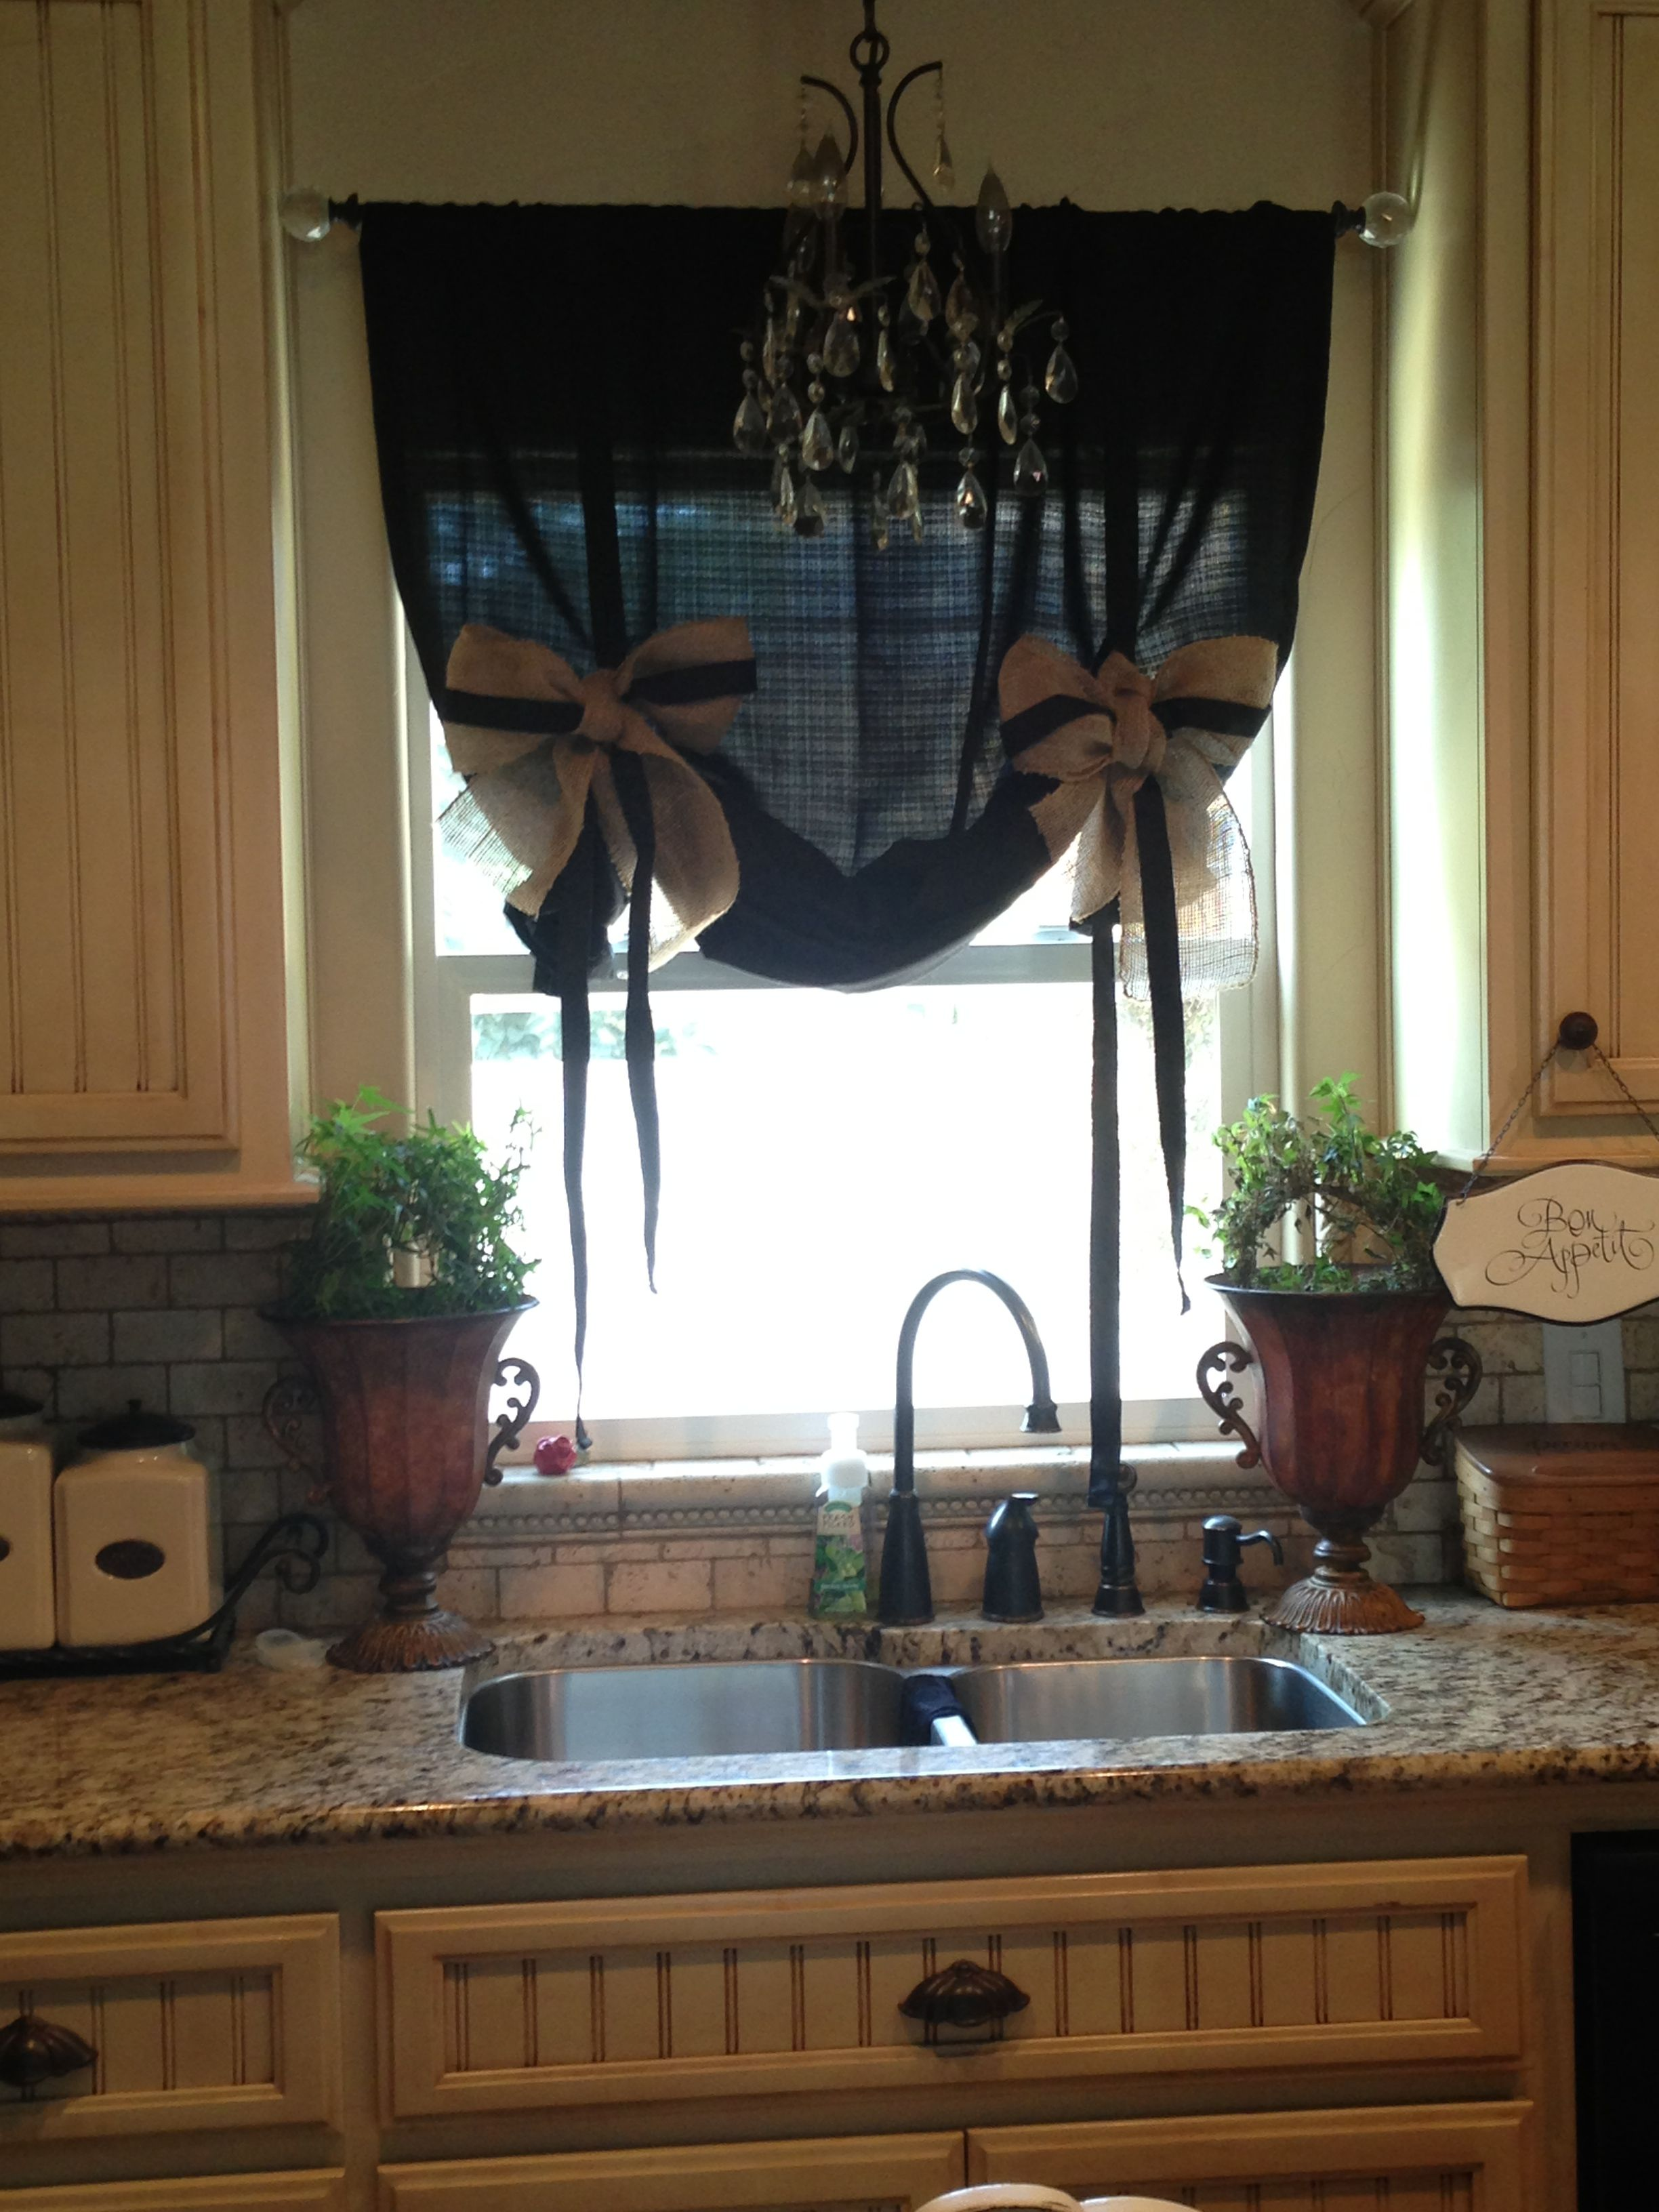 Kitchen Curtains Burlap Kitchen Curtains Rustic Kitchen Decor Cafe Curtains